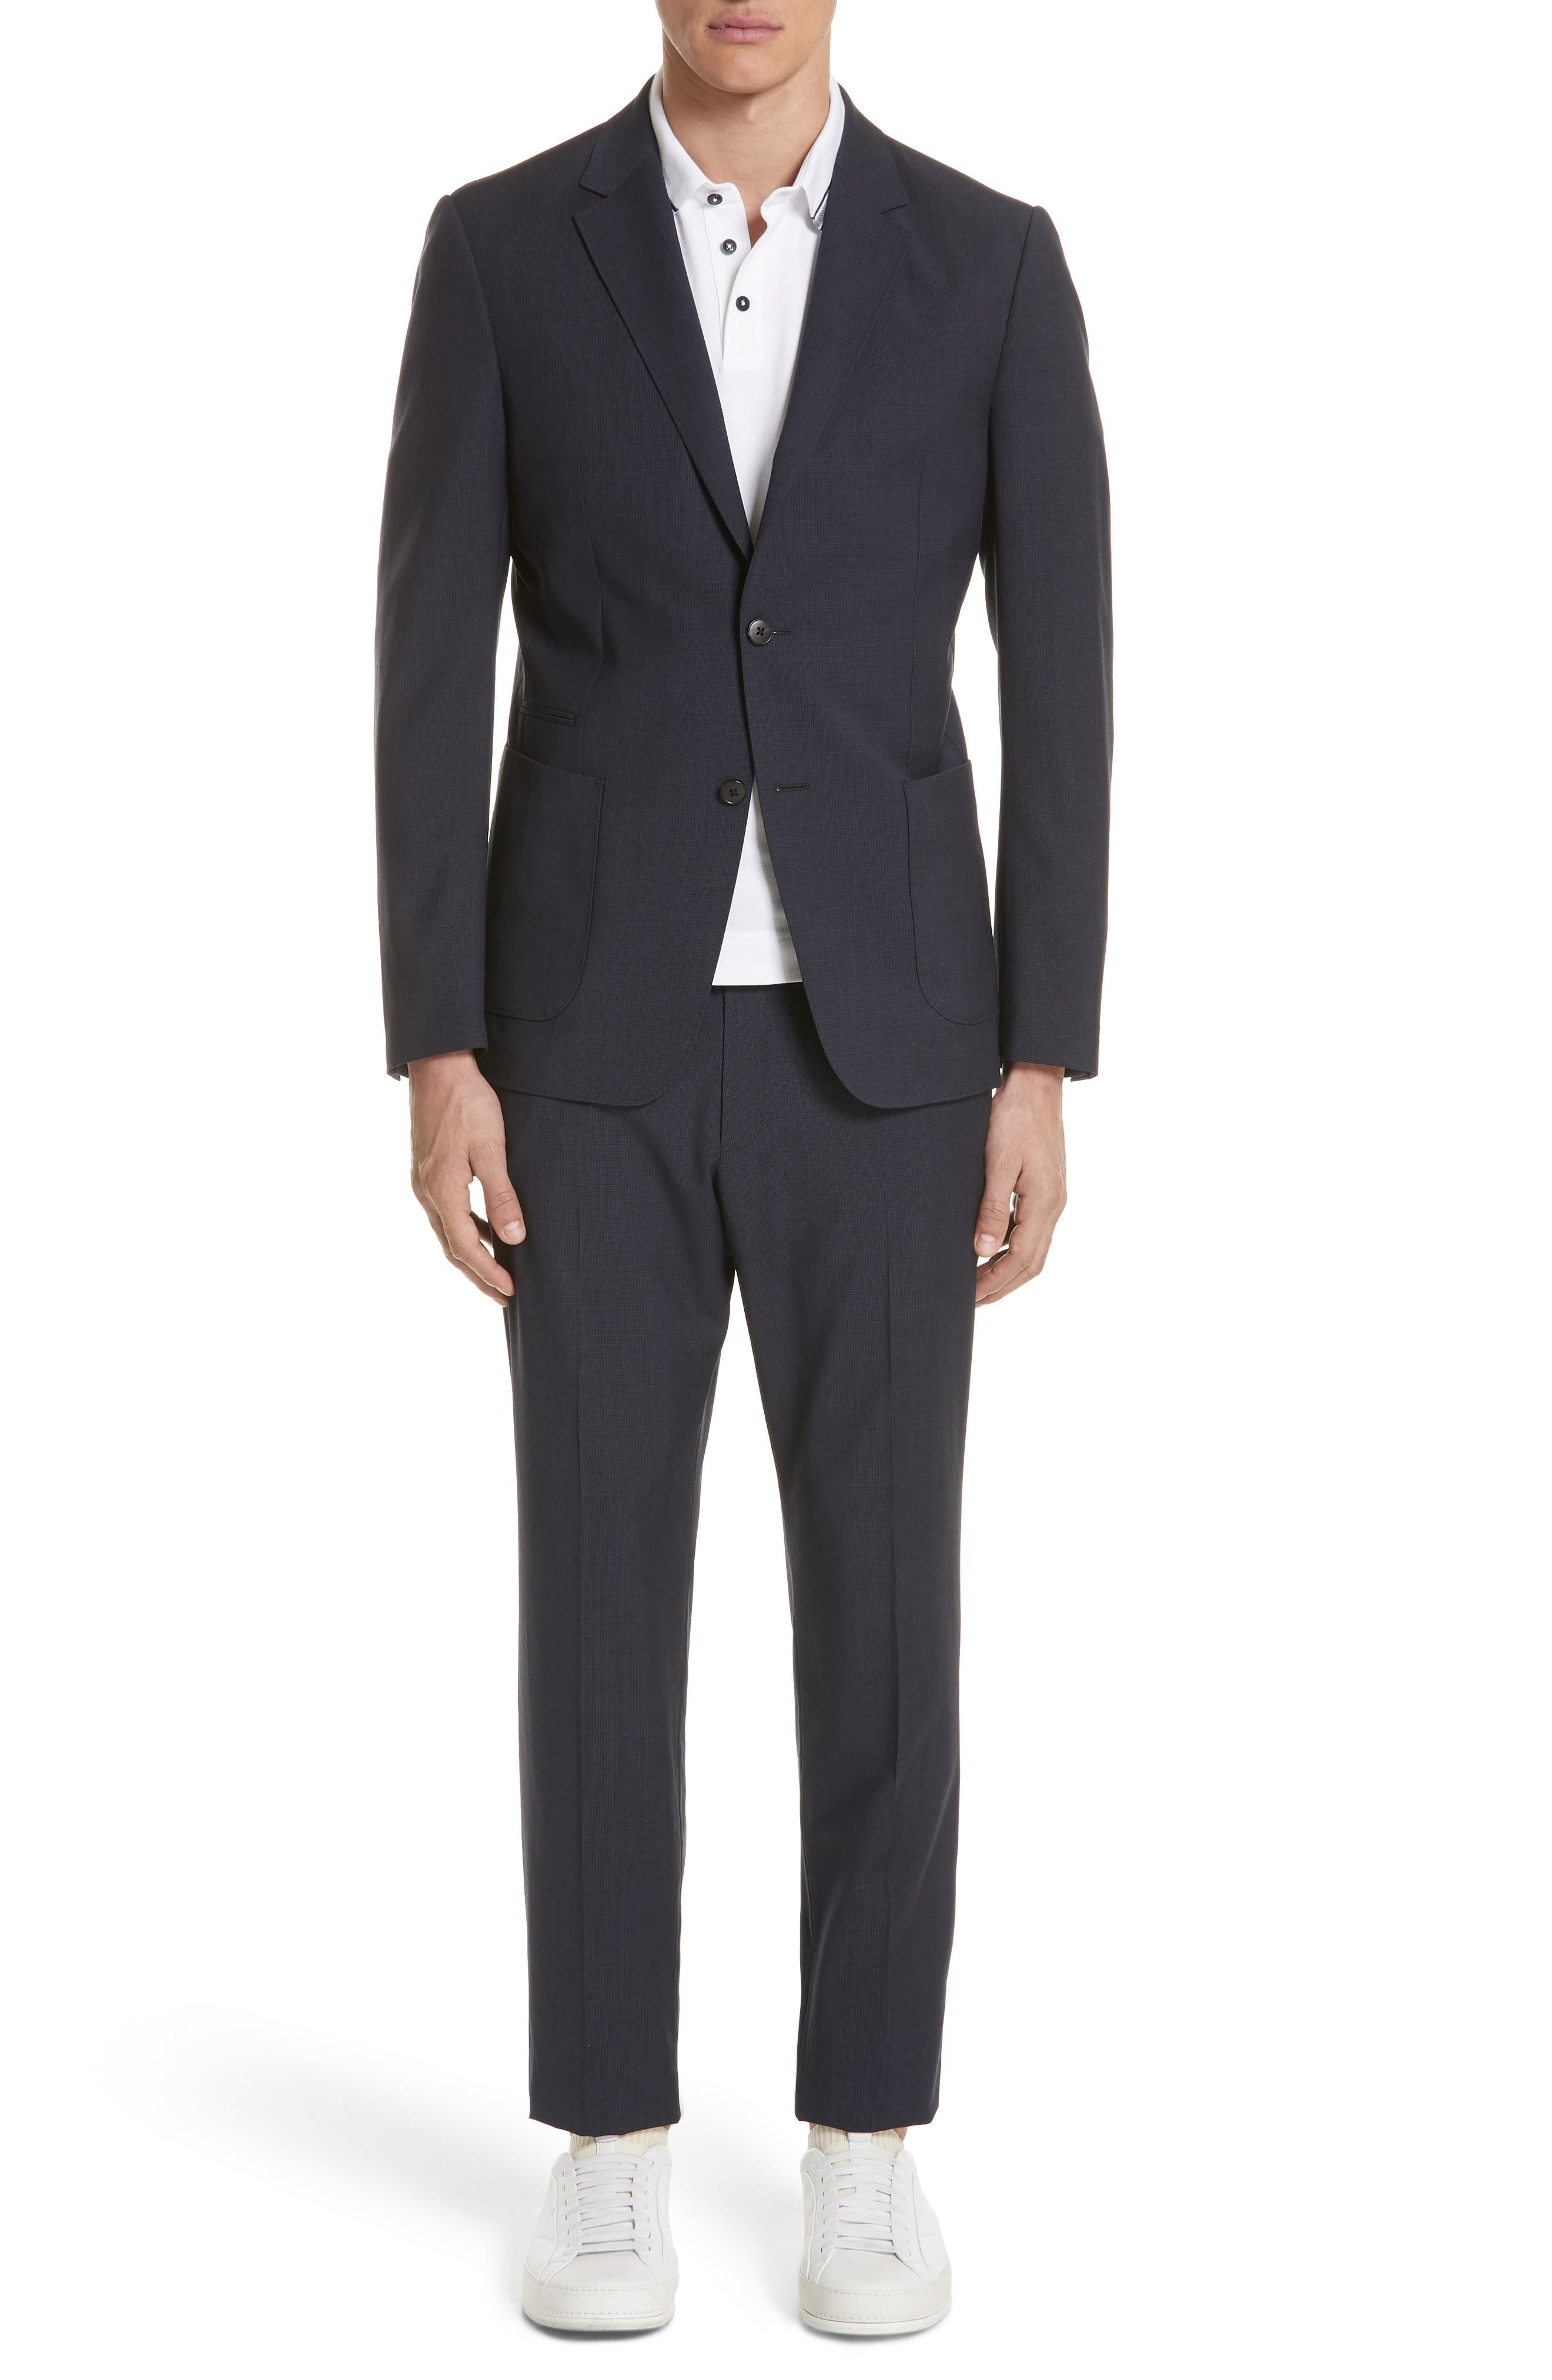 Main Image - Z Zegna TECHMERINO™ Wash & Go Trim Fit Solid Wool Suit